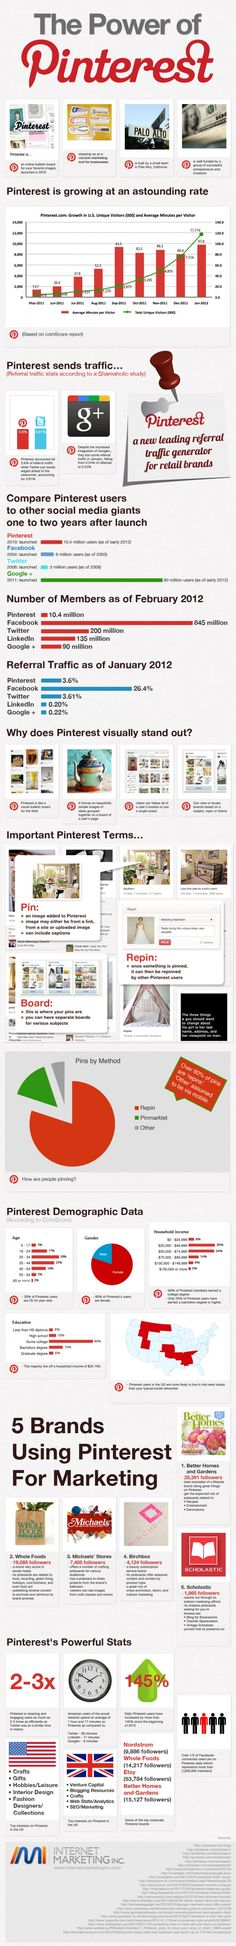 The power of Pinterest (Infographic)